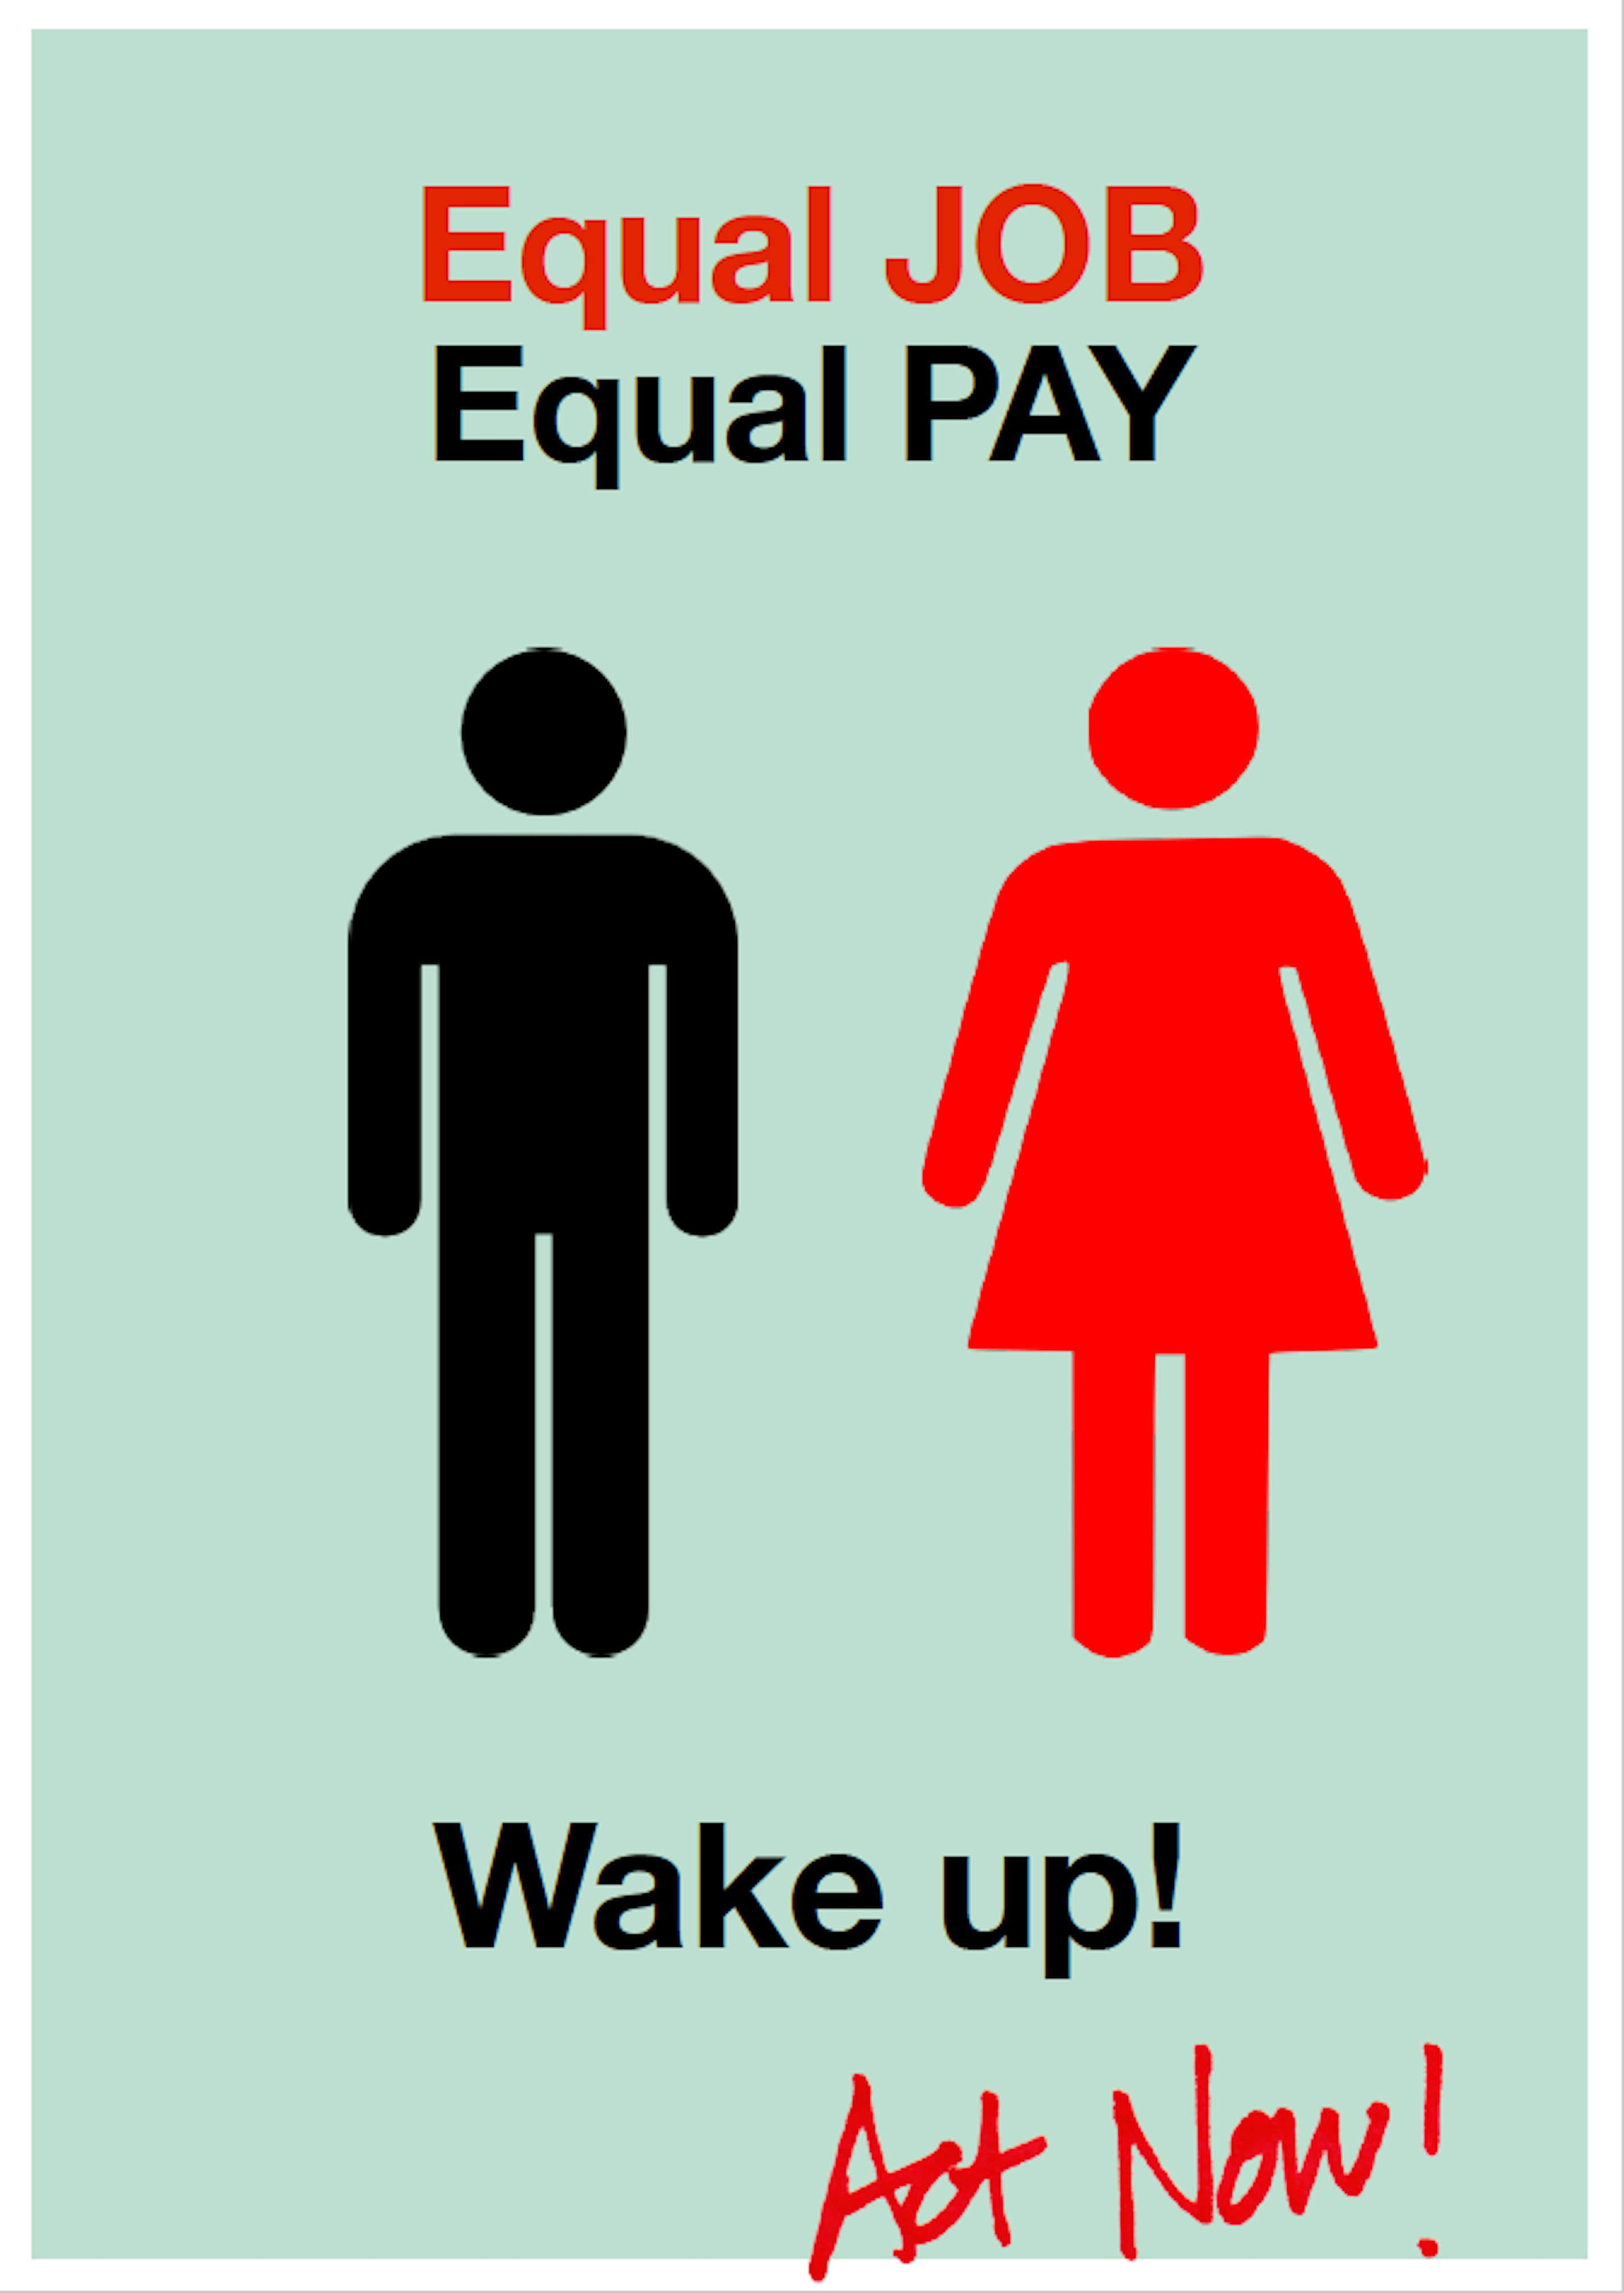 an illusion of equality within gender In her article, for women in america, equality is still an illusion, jessica valenti subject matter is to describe the discrepancies between what is perceived as gender equality to what is really occurring in america in hopes of ending the mistreatment and injustices of women.